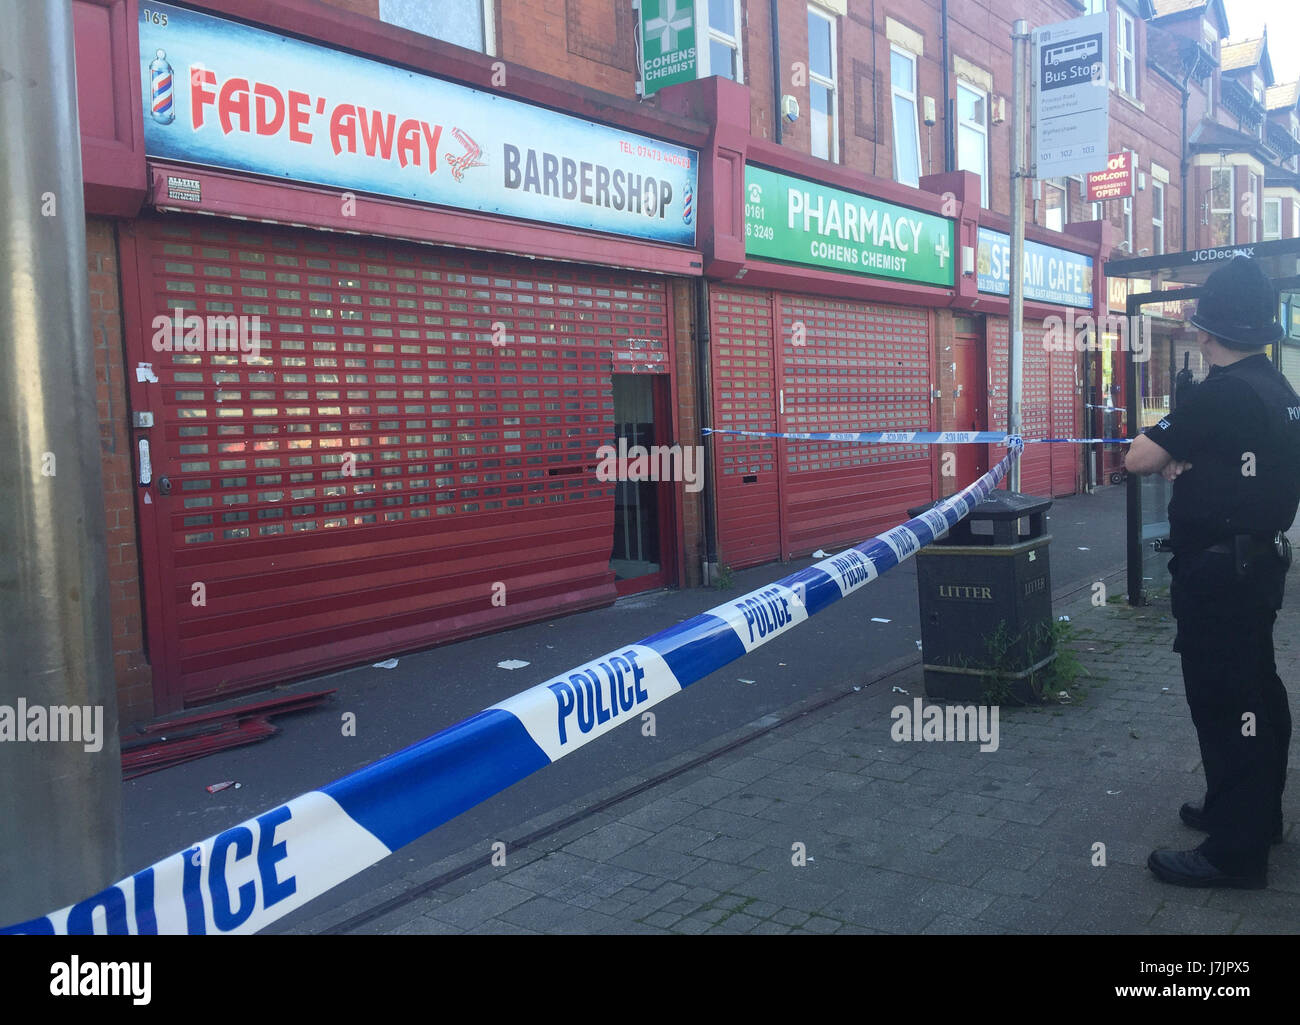 A police cordon outside the Fade Away barbershop in Princess Road in Moss Side, Manchester. Counter-terror police - Stock Image